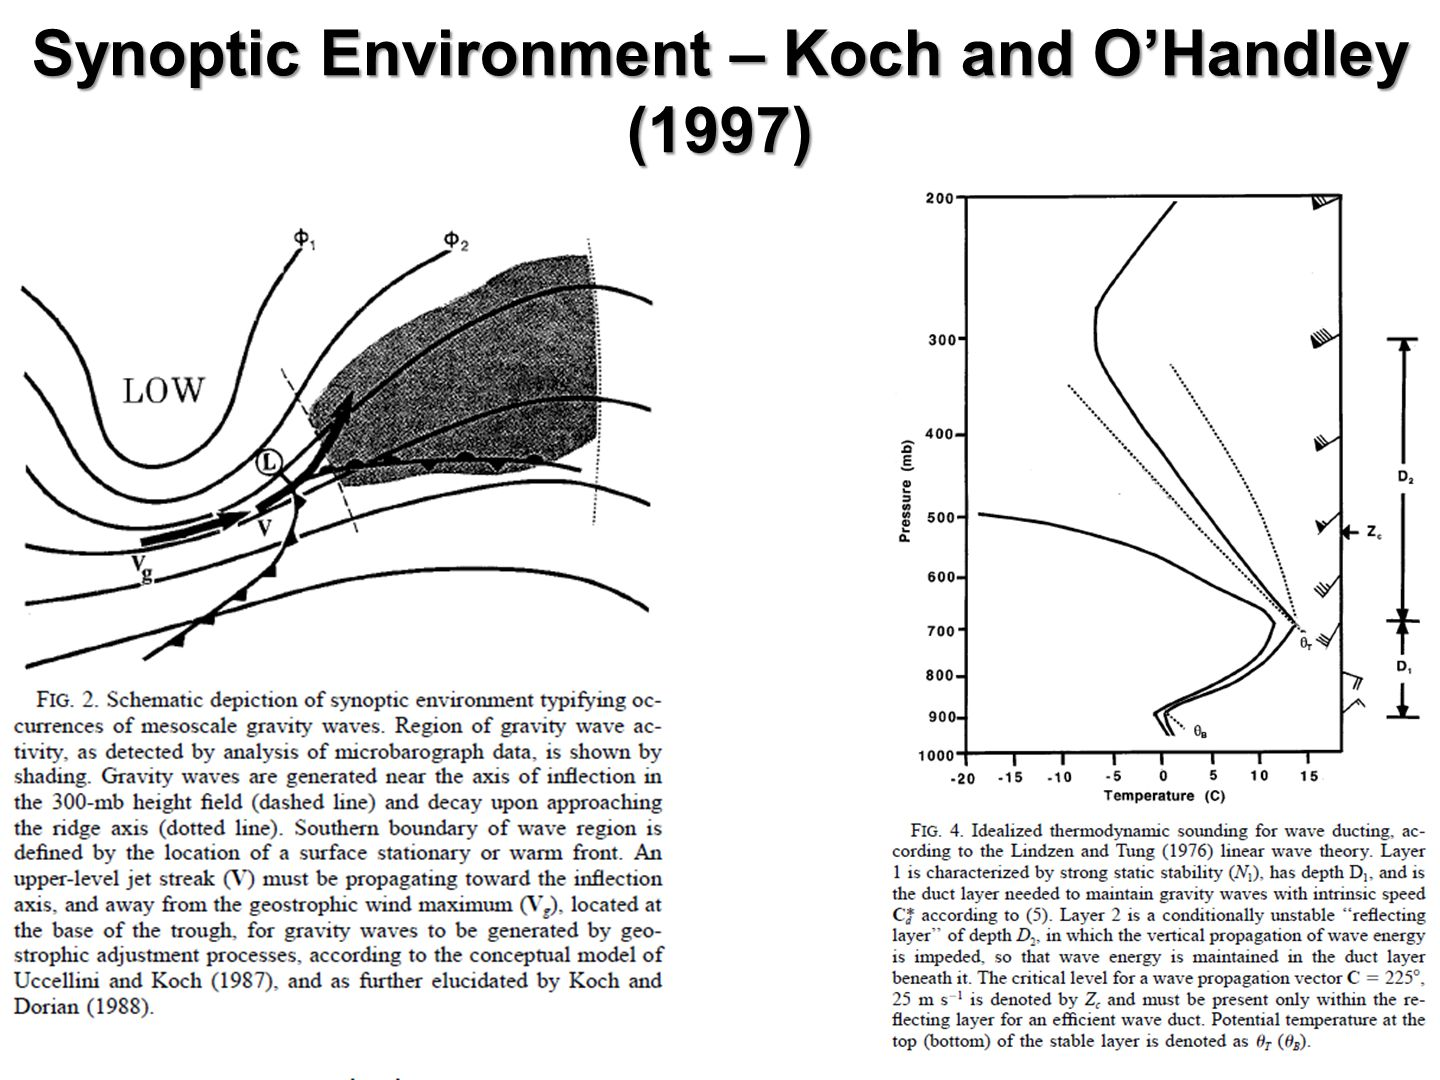 Synoptic Environment – Koch and O'Handley (1997)